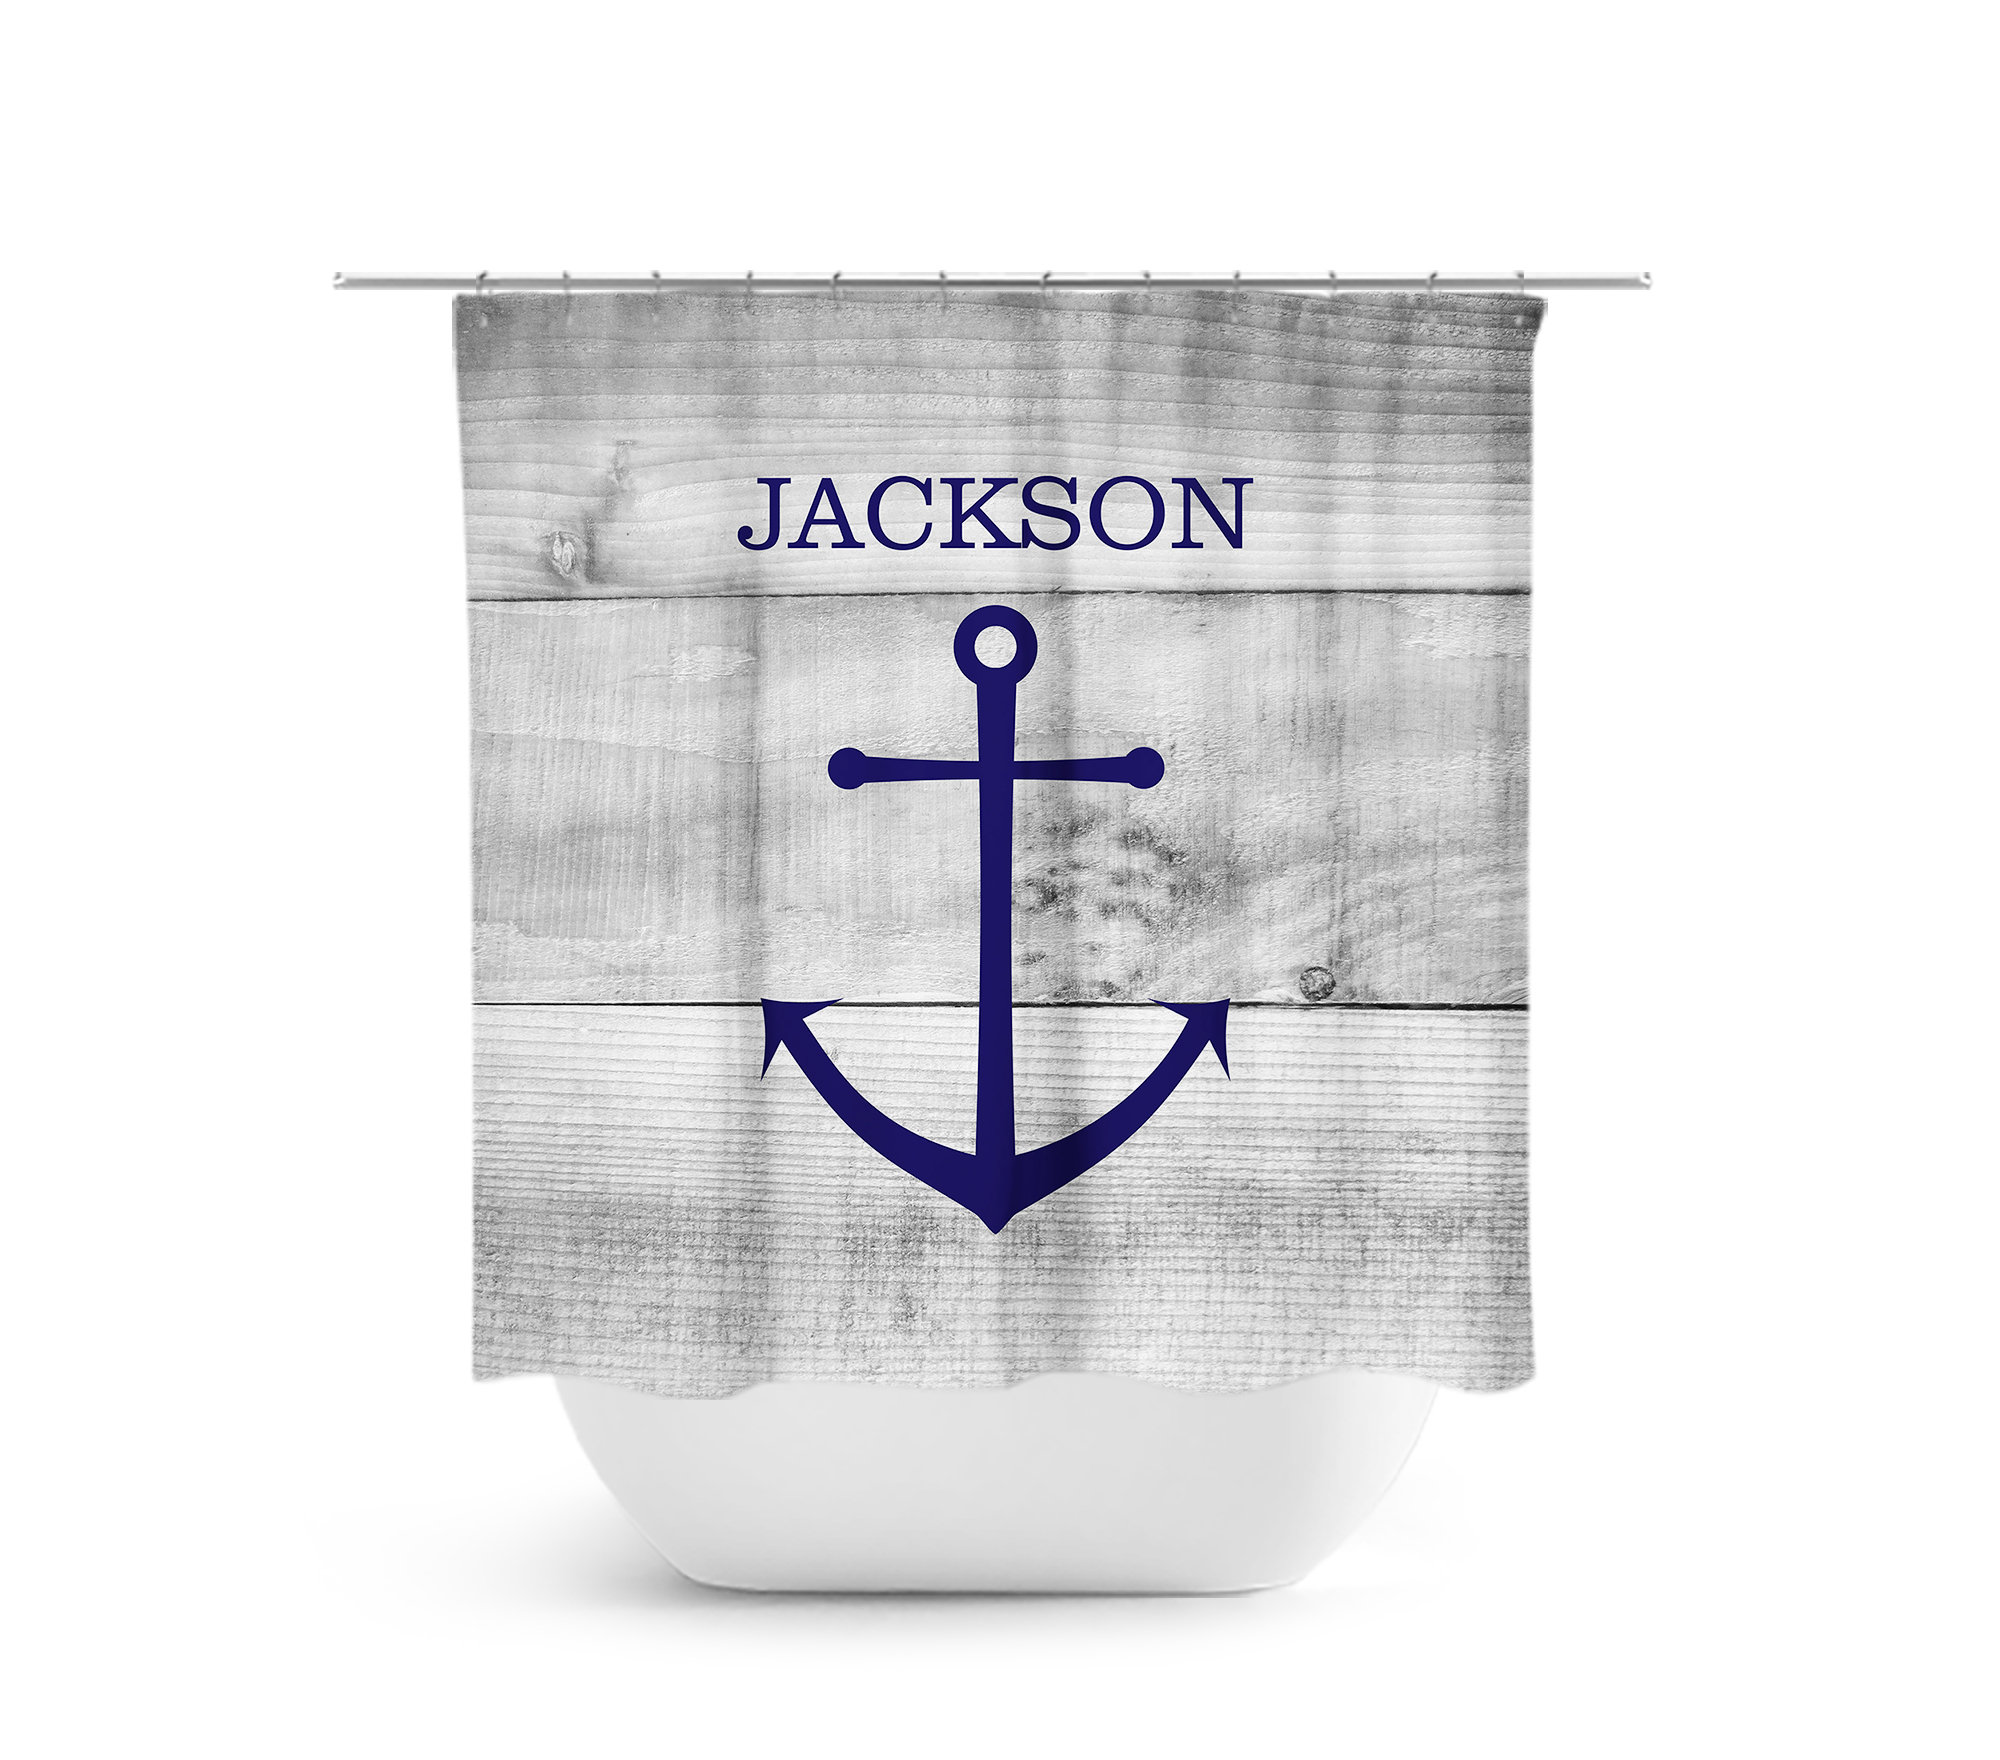 Nautical Shower Curtain Personalized Kids Bathroom Decor Bathtub Farmhouse